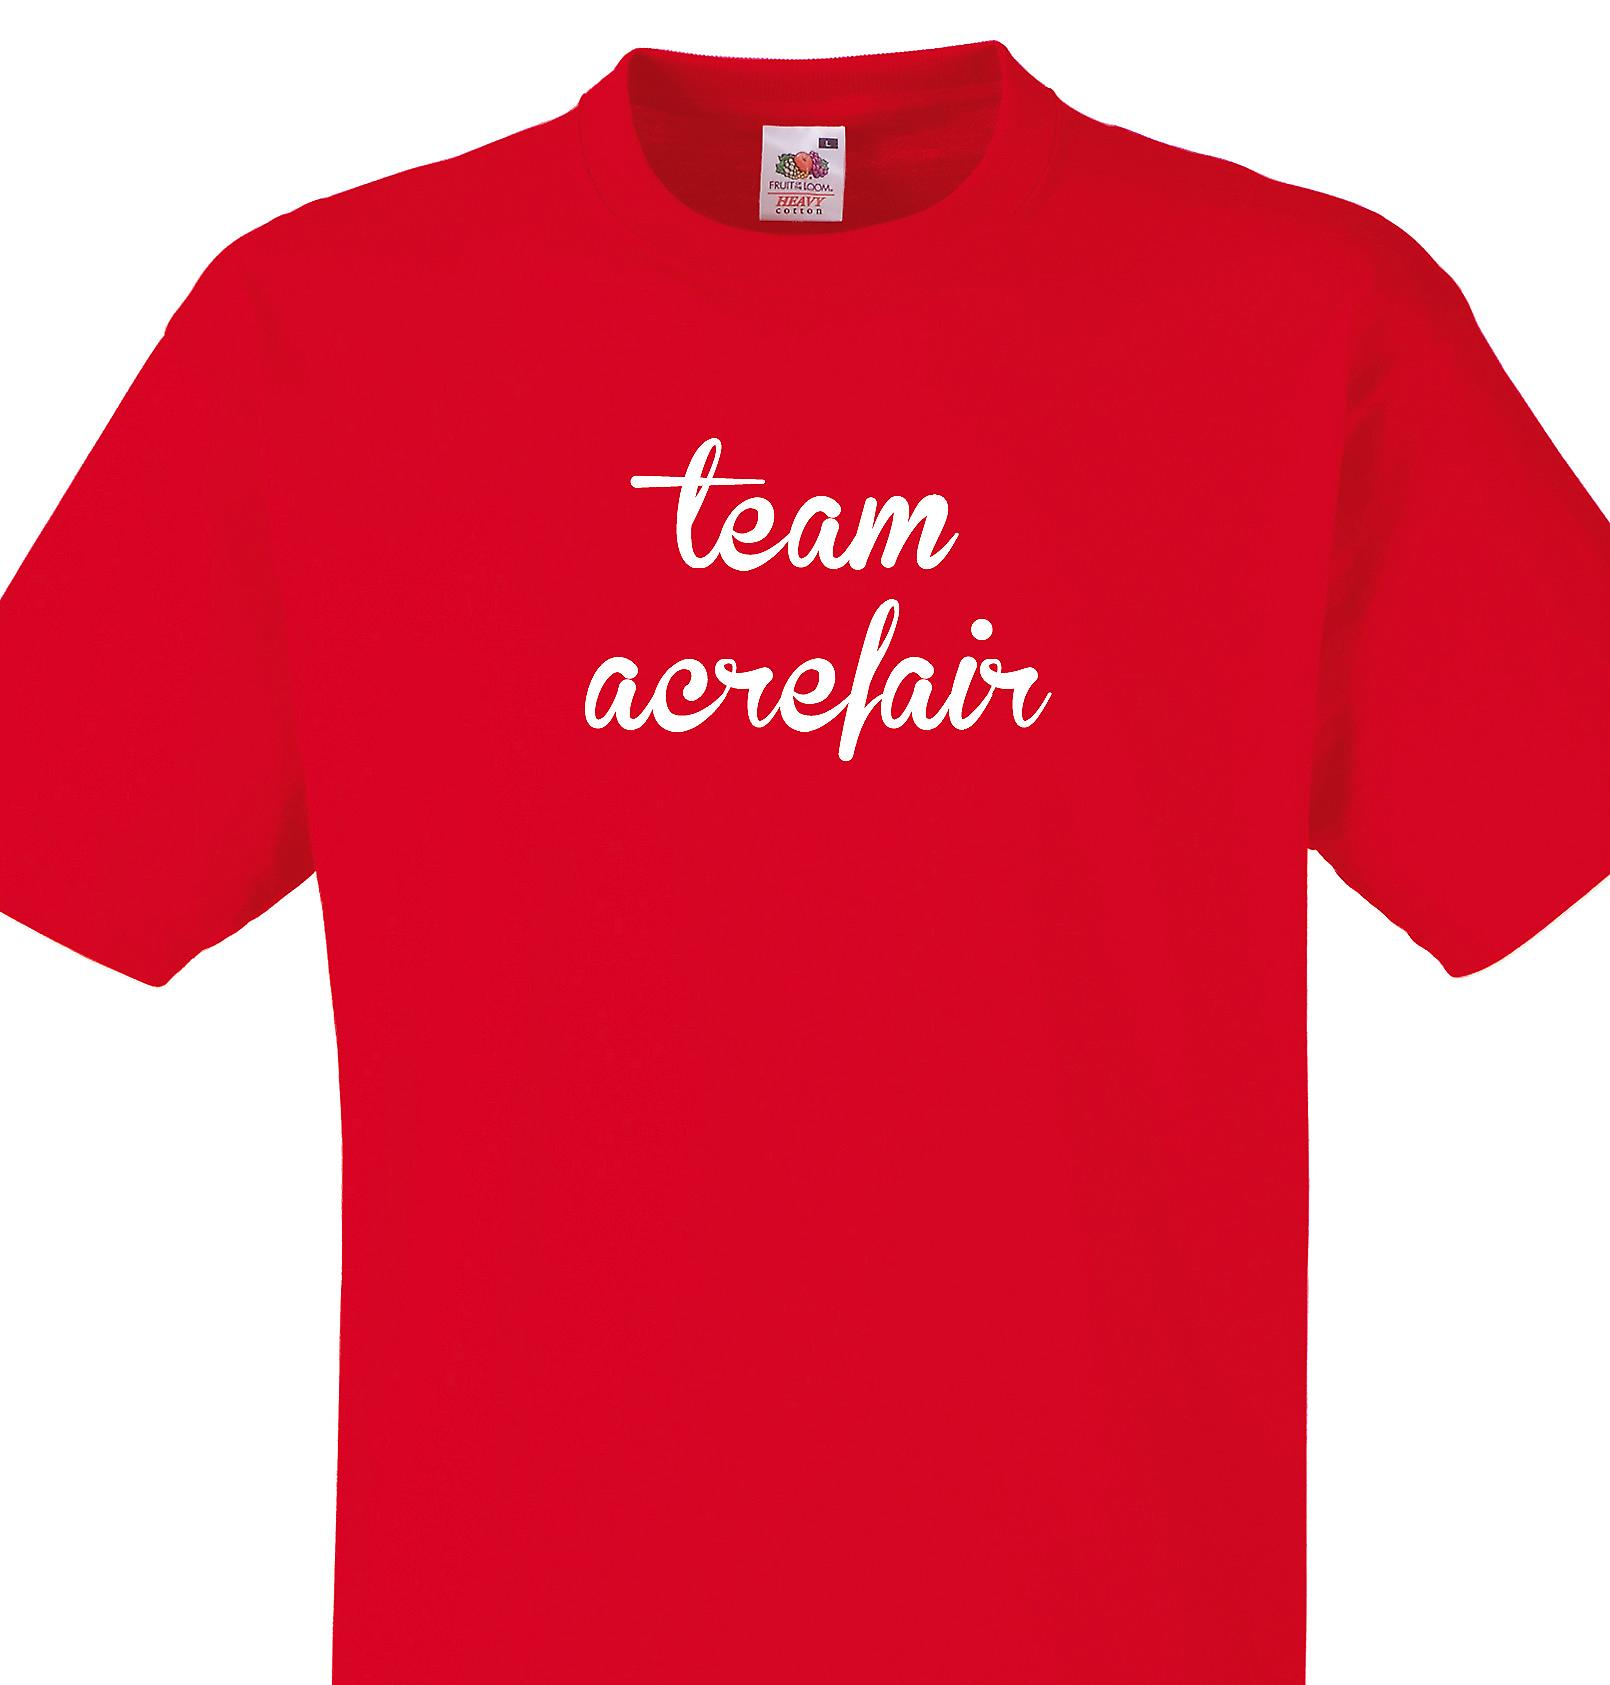 Team Acrefair Red T shirt